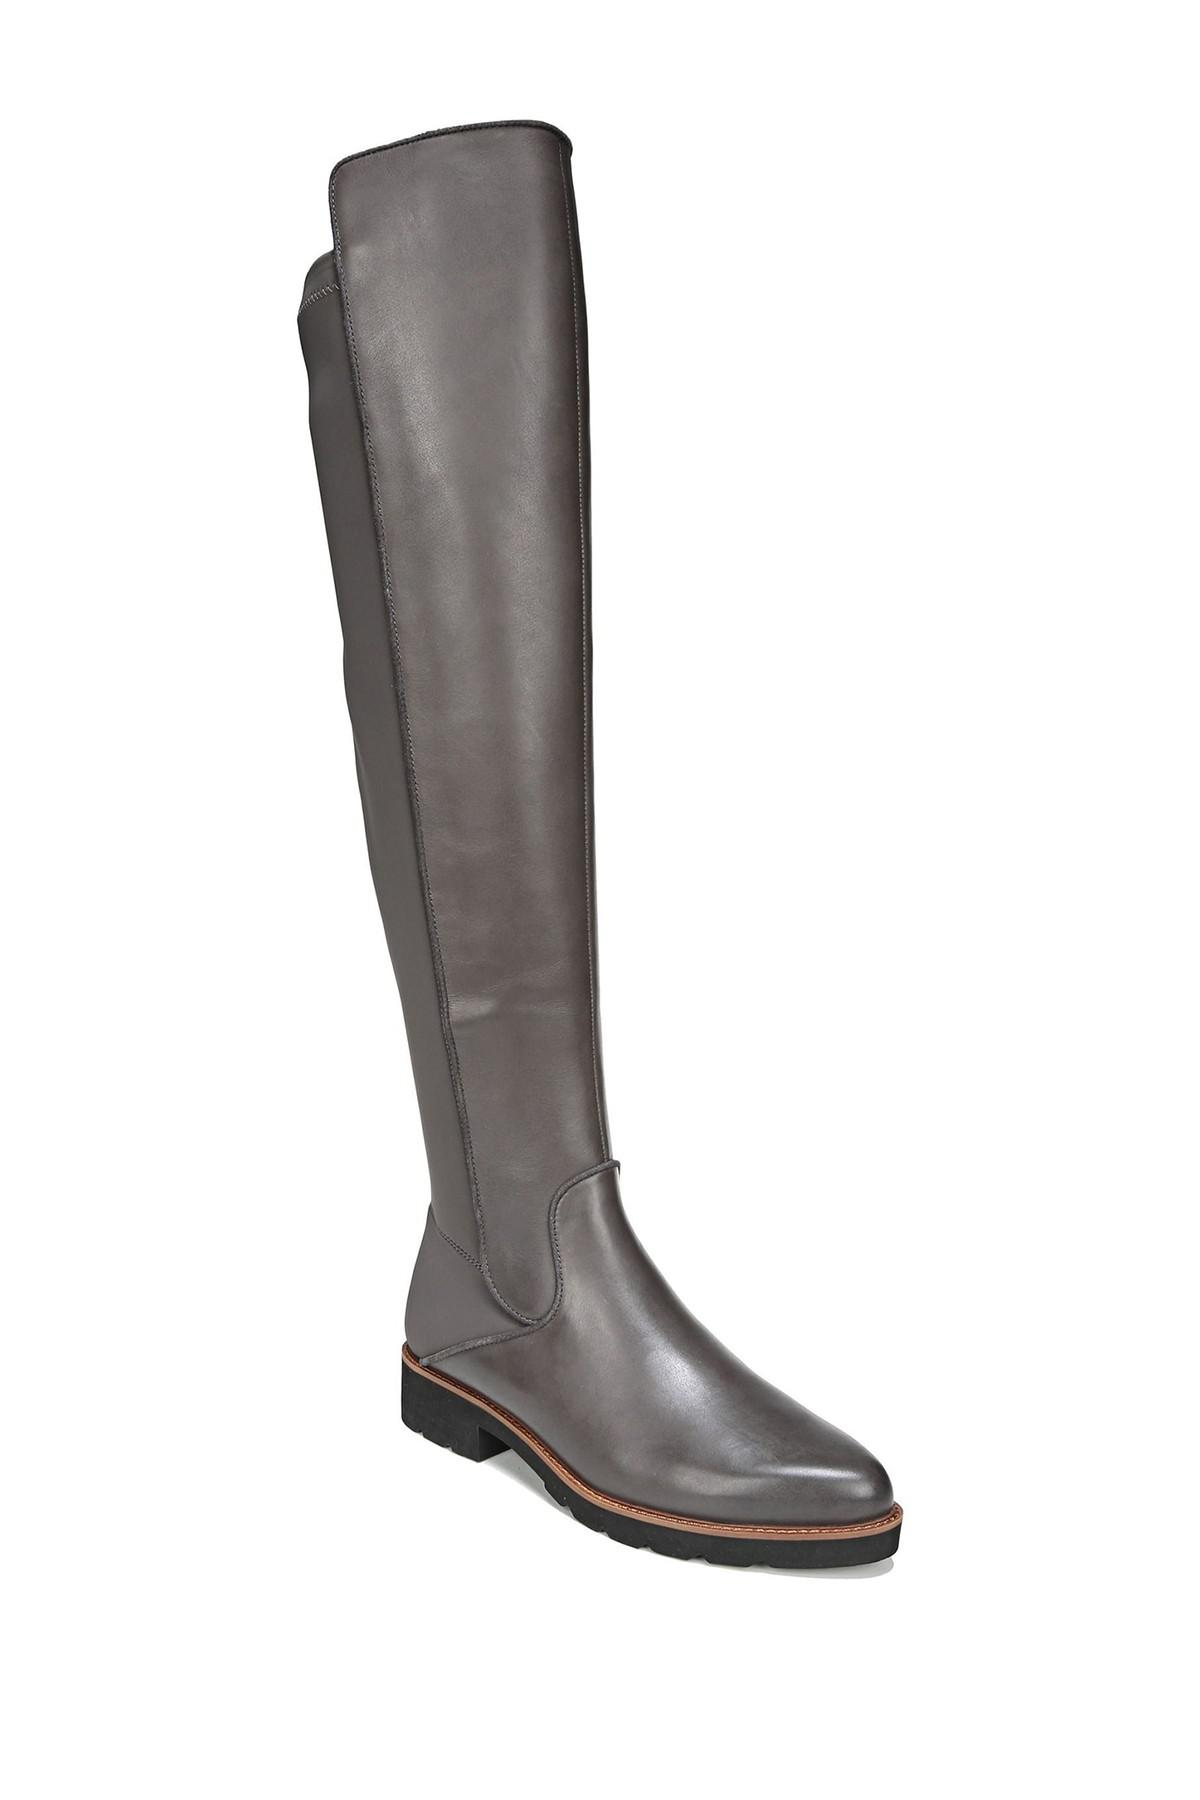 4946ccad2d6 Franco Sarto Benner Leather Over-the-knee Boot in Black - Save 38 ...